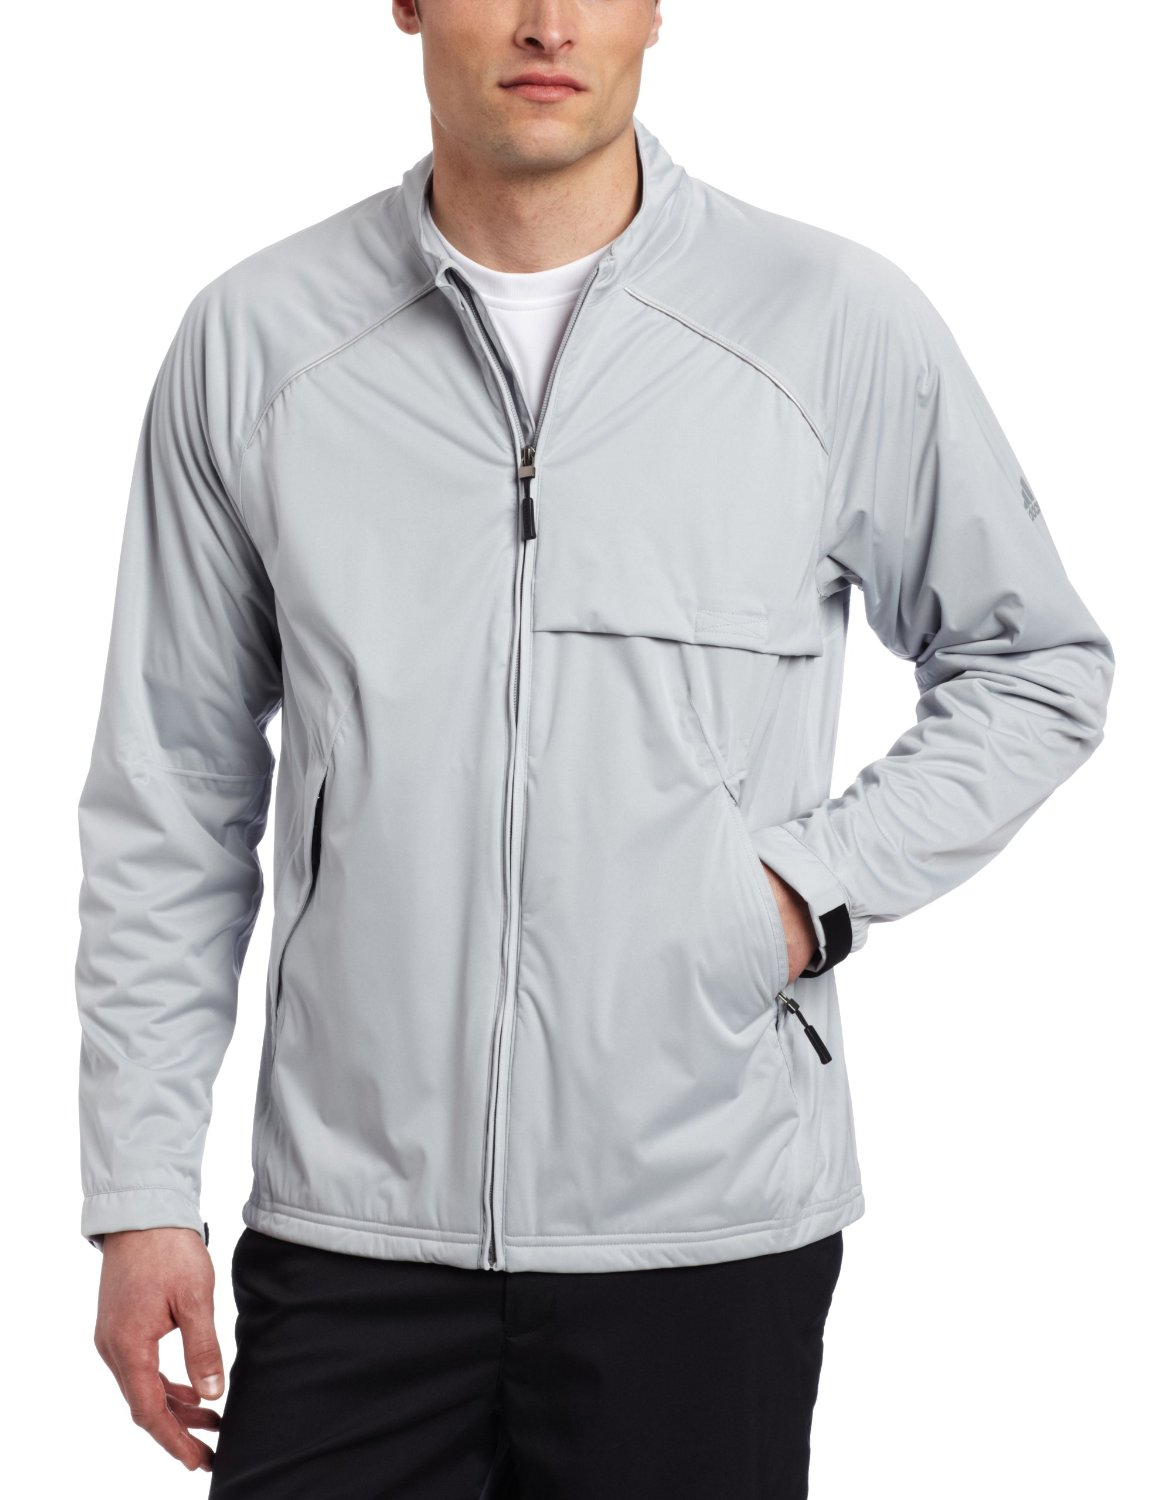 Adidas Mens ClimaProof Storm Soft Shell Golf Jackets